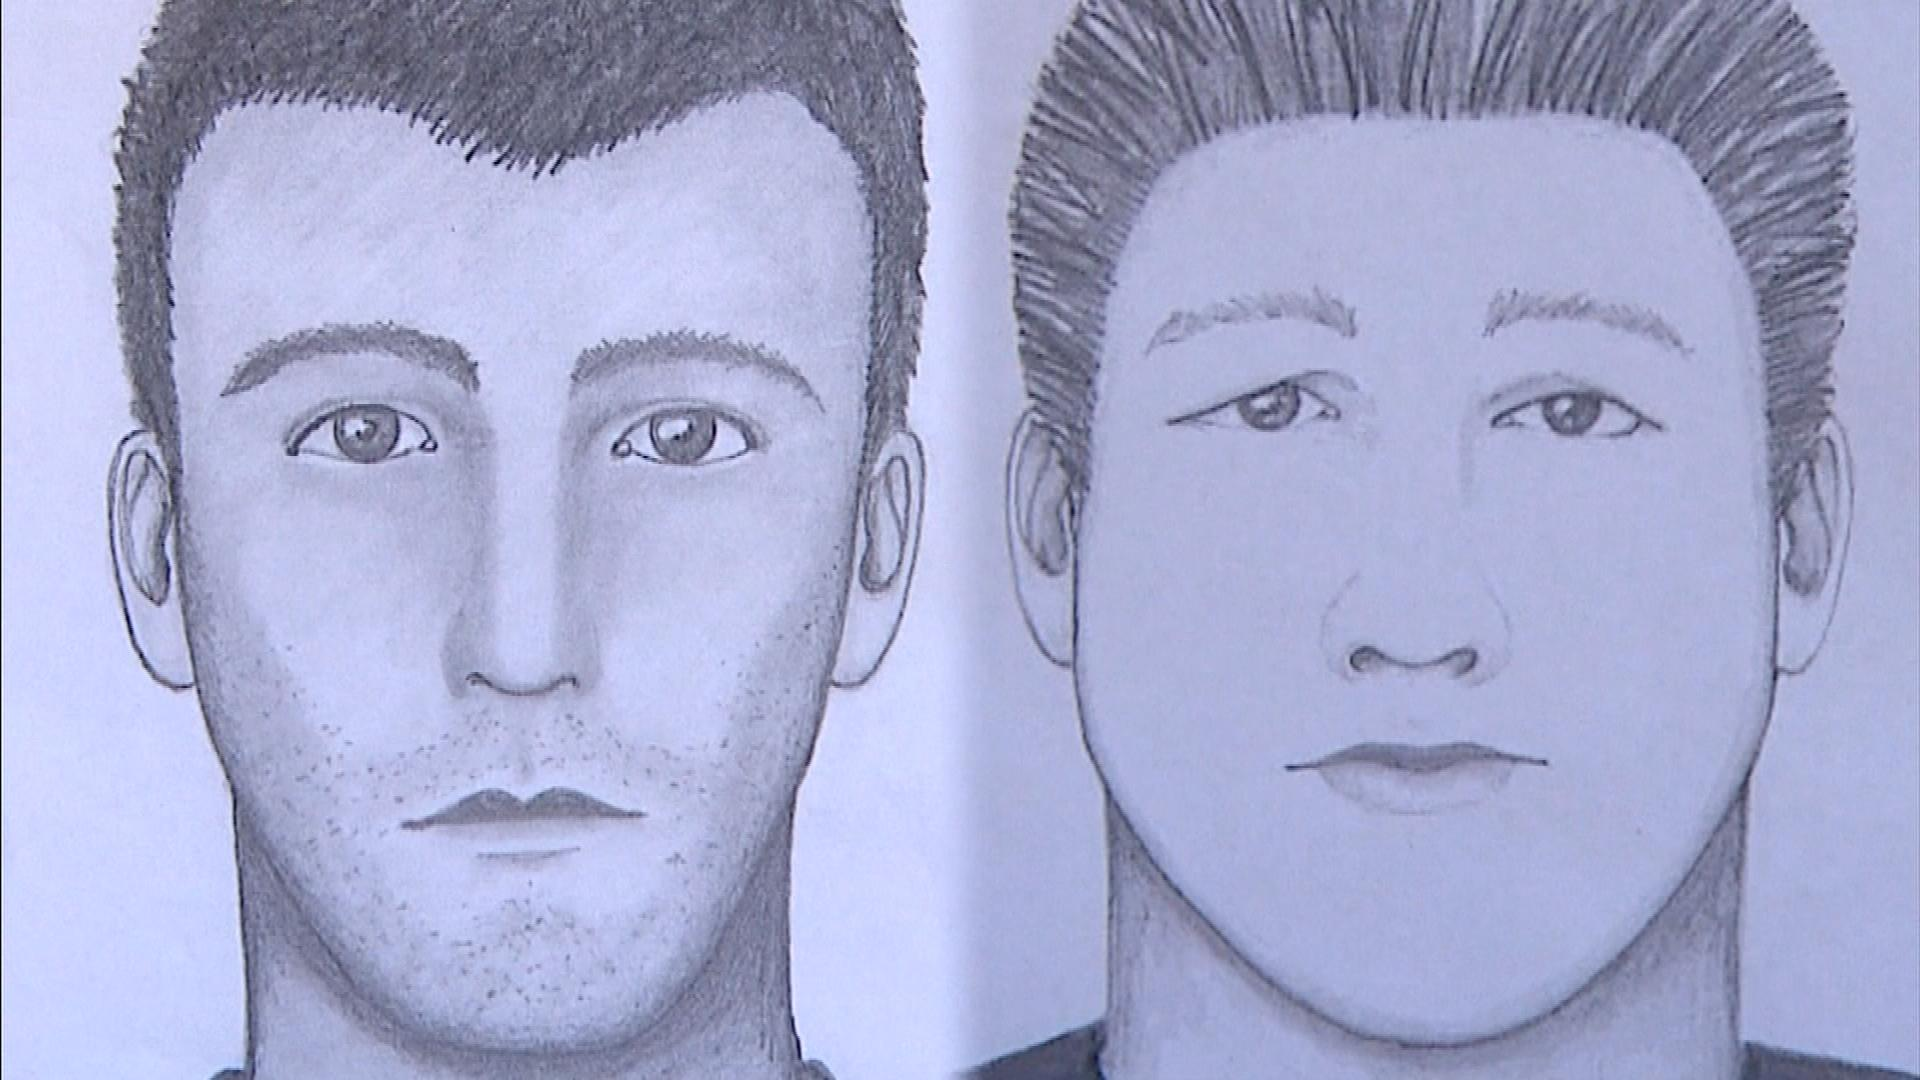 Two different sketches of the burglar (credit: Boulder Police)